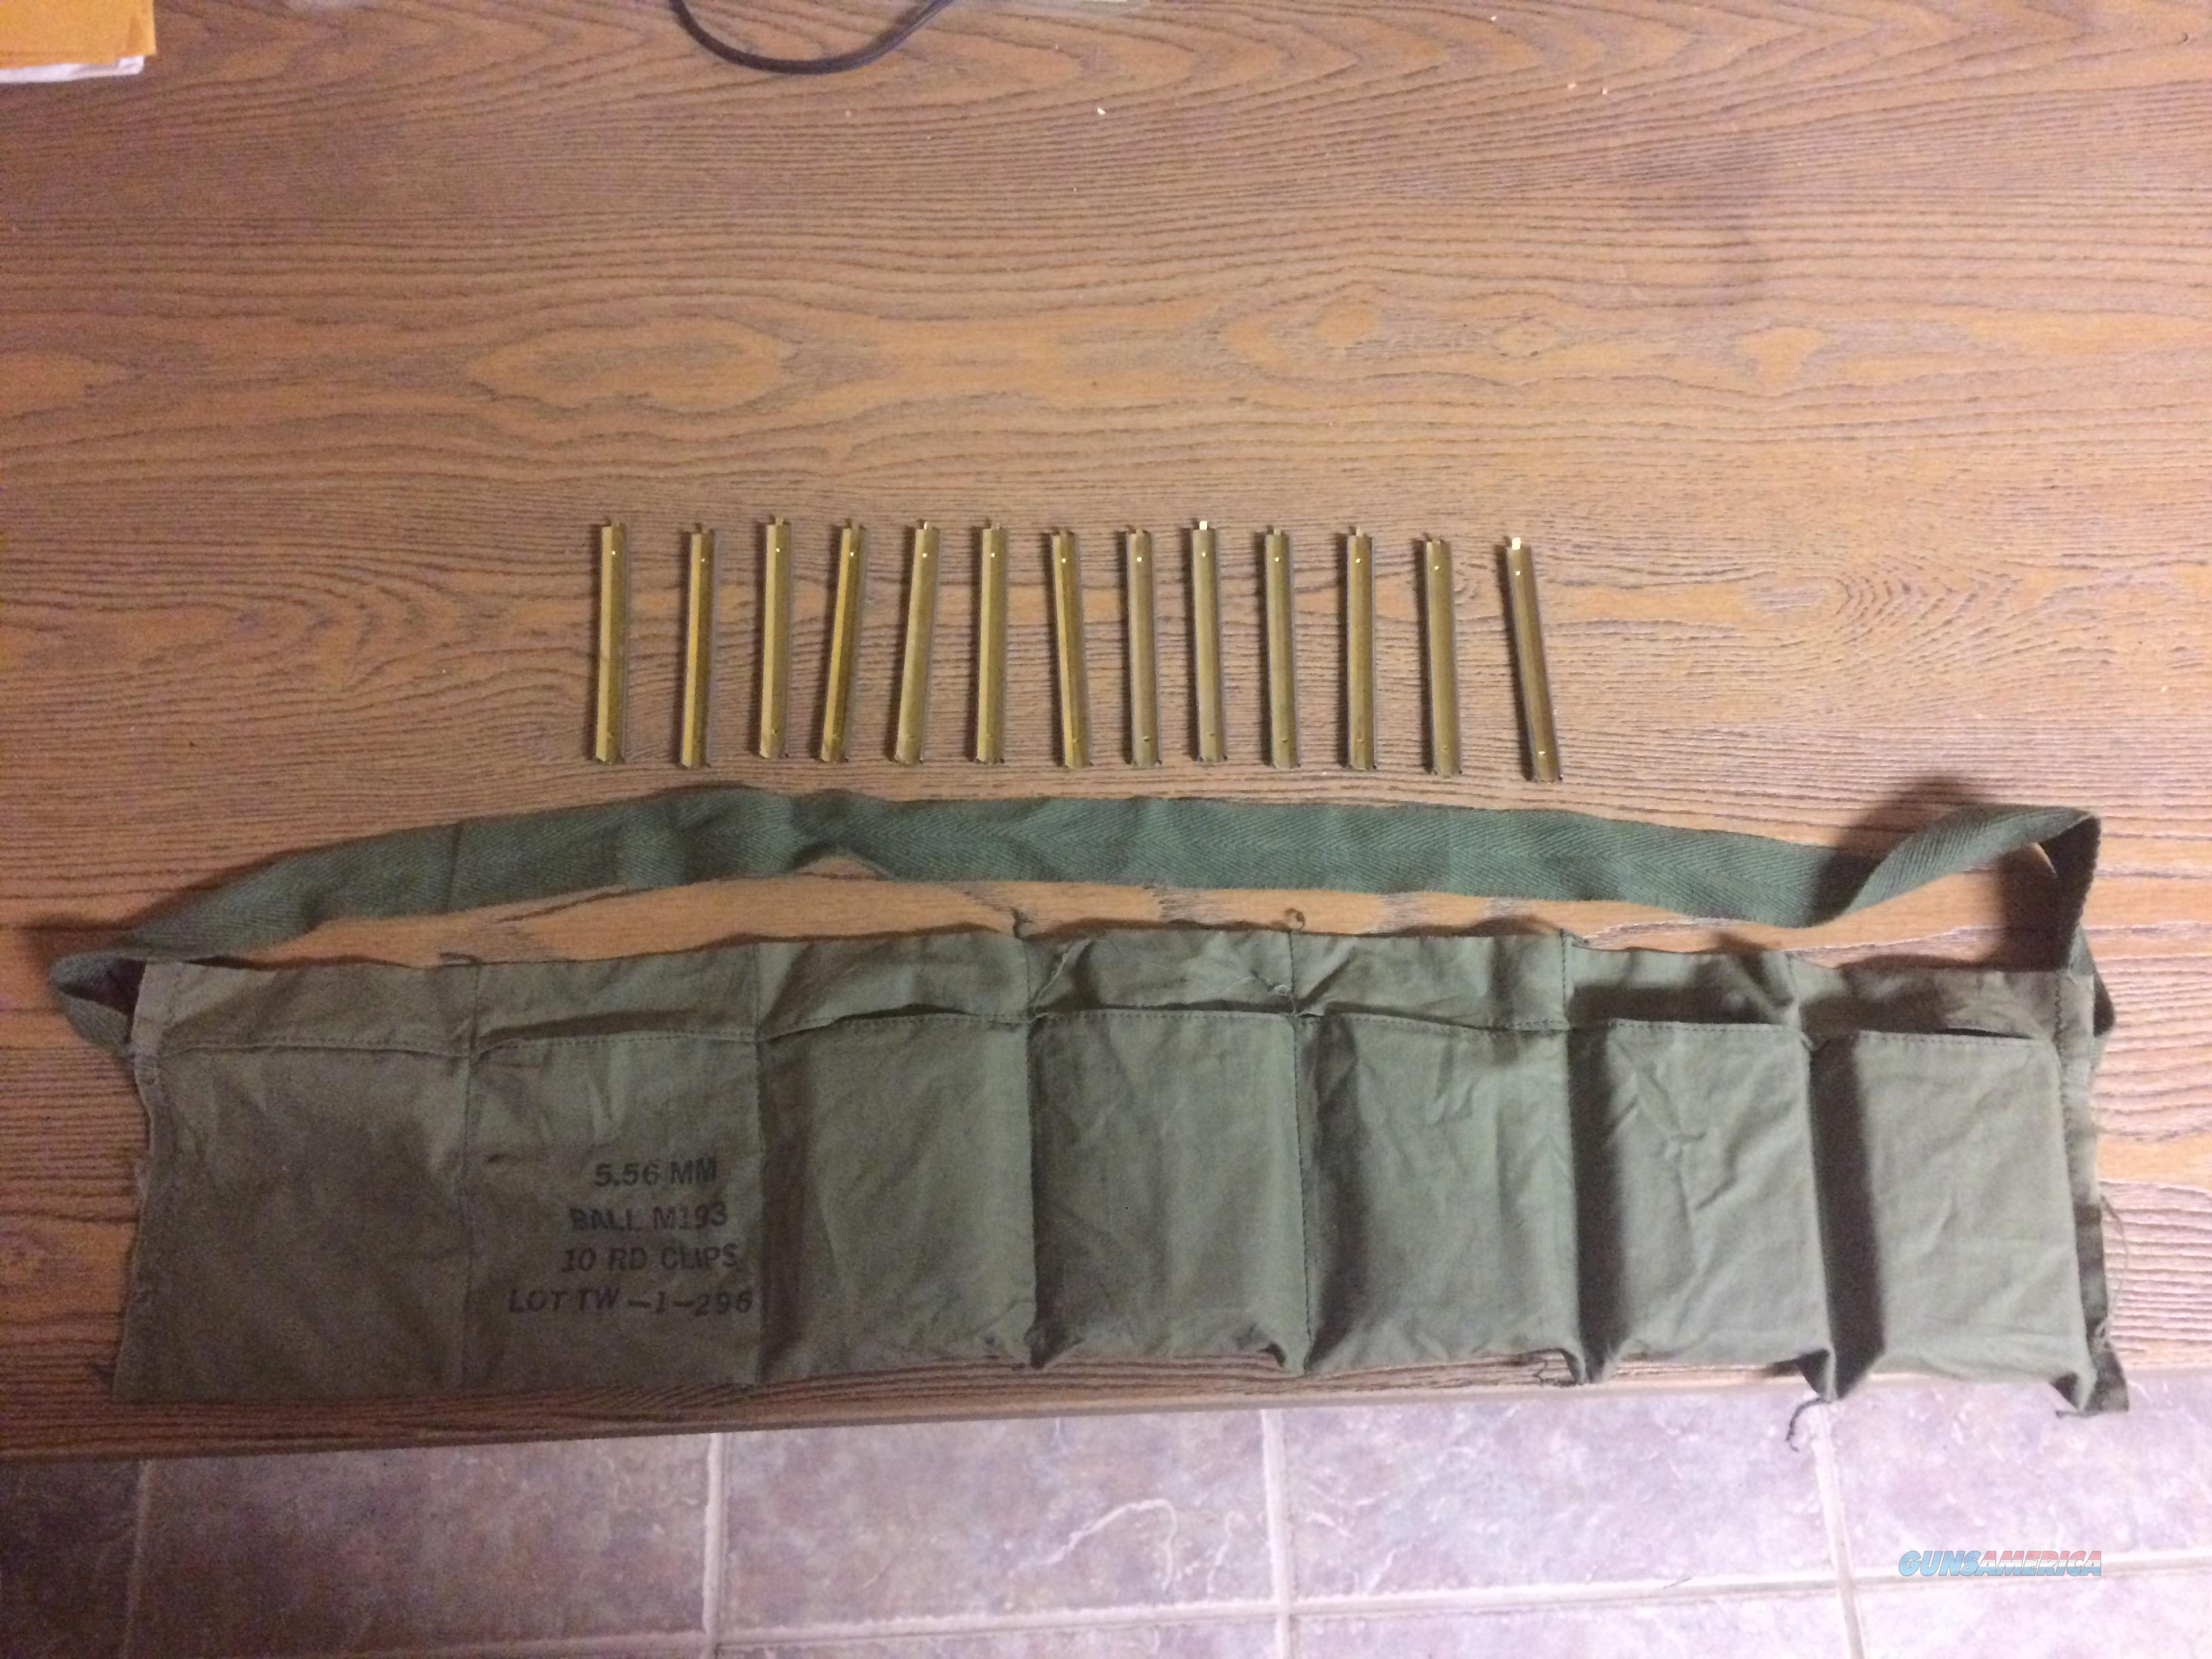 .223 13-10RD STRIPPER CLIPS AND 5.56 NATO BANDOLIER  Non-Guns > Magazines & Clips > Rifle Magazines > AR-15 Type